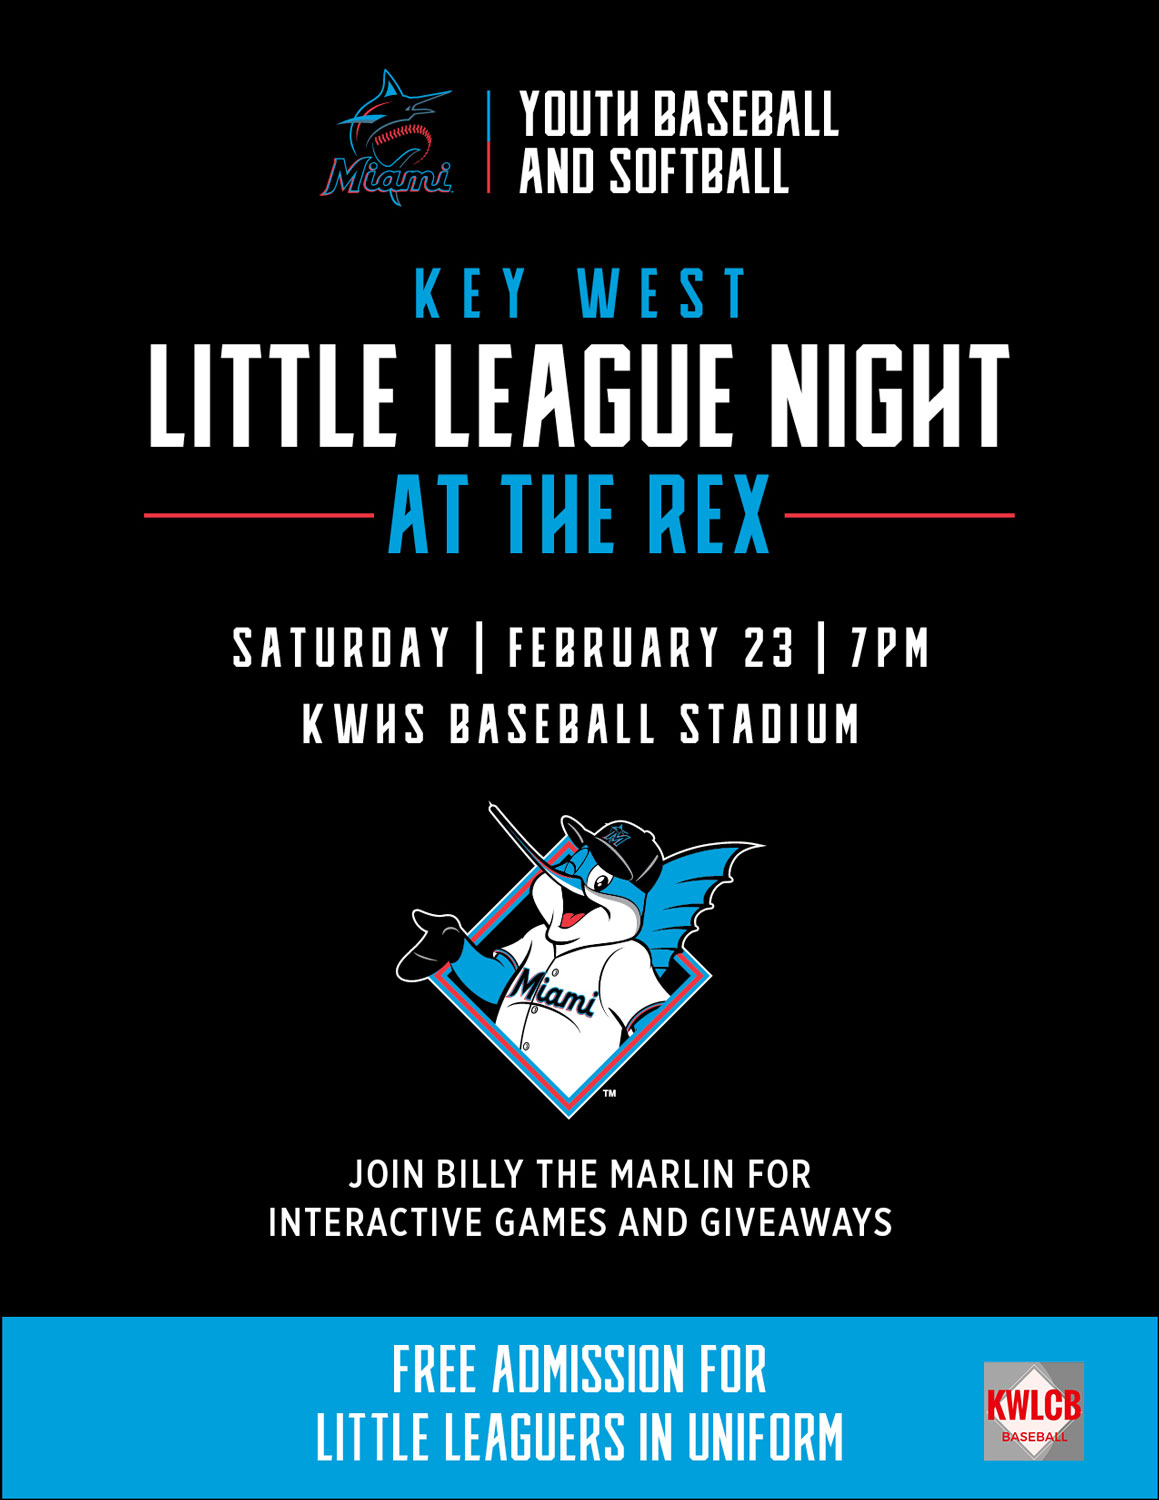 YB018_Key_West_Little_League_Night_Digital_Flyer.jpg